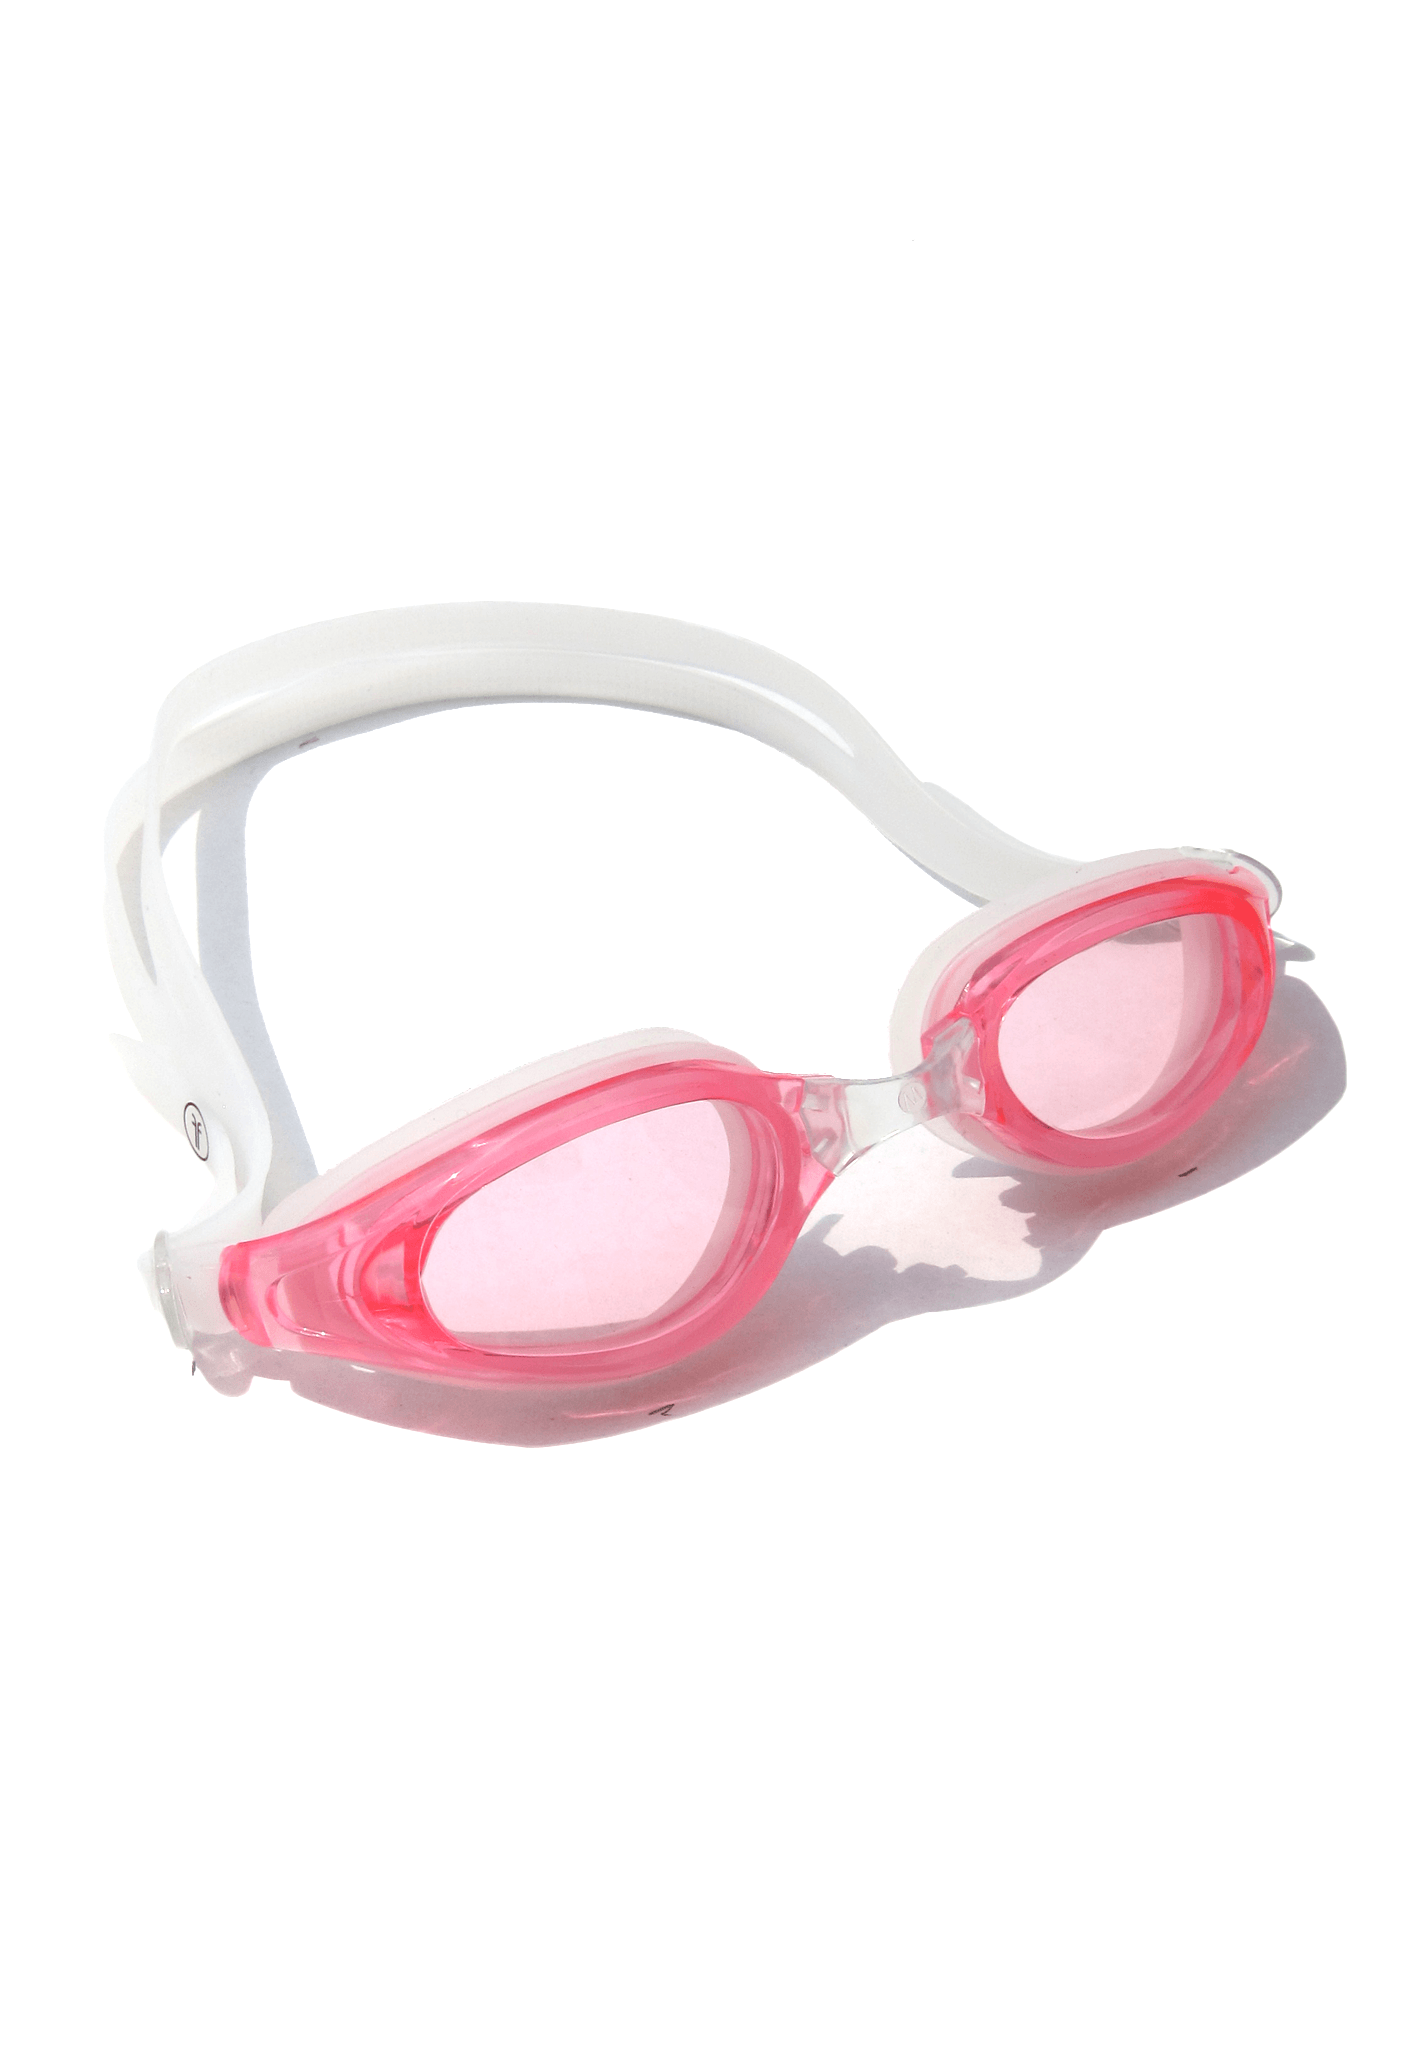 Leisure Wide-Framed Goggles (Pink) - FUNFIT